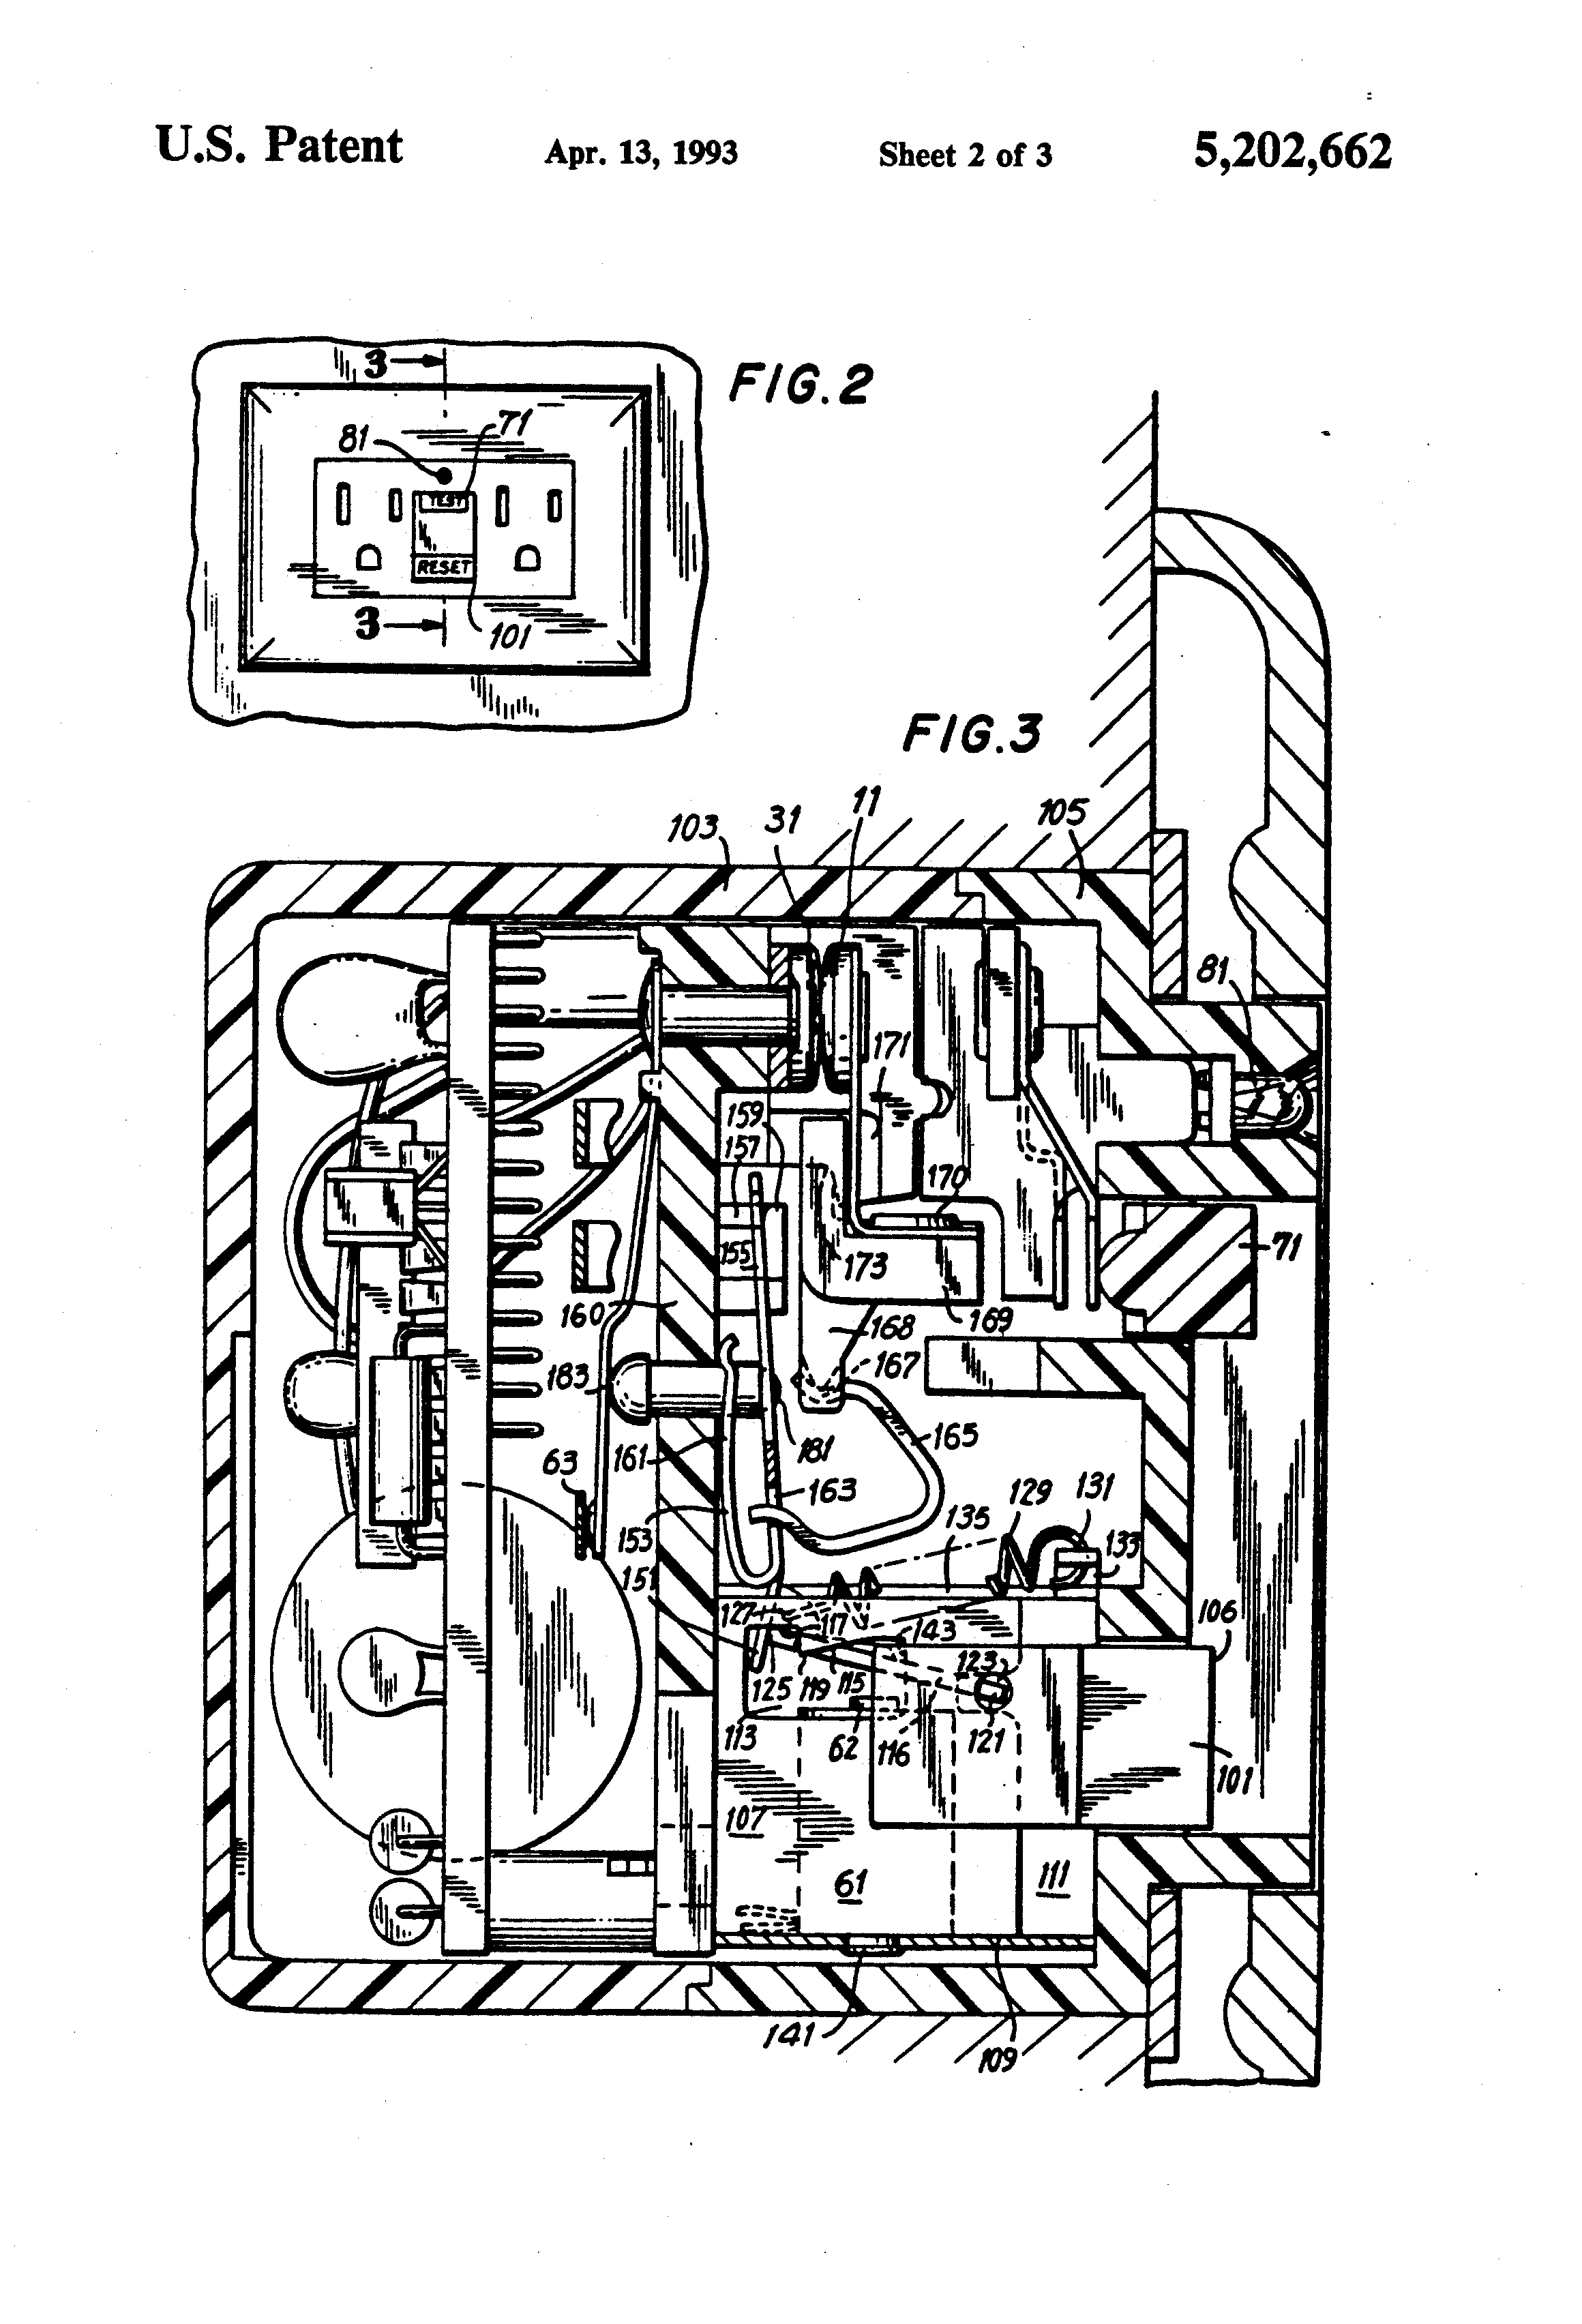 Ground Fault Outlet Wiring Diagram As Well Patent Us7289306 Patente Us5202662 Resettable Circuit Breaker For Use In